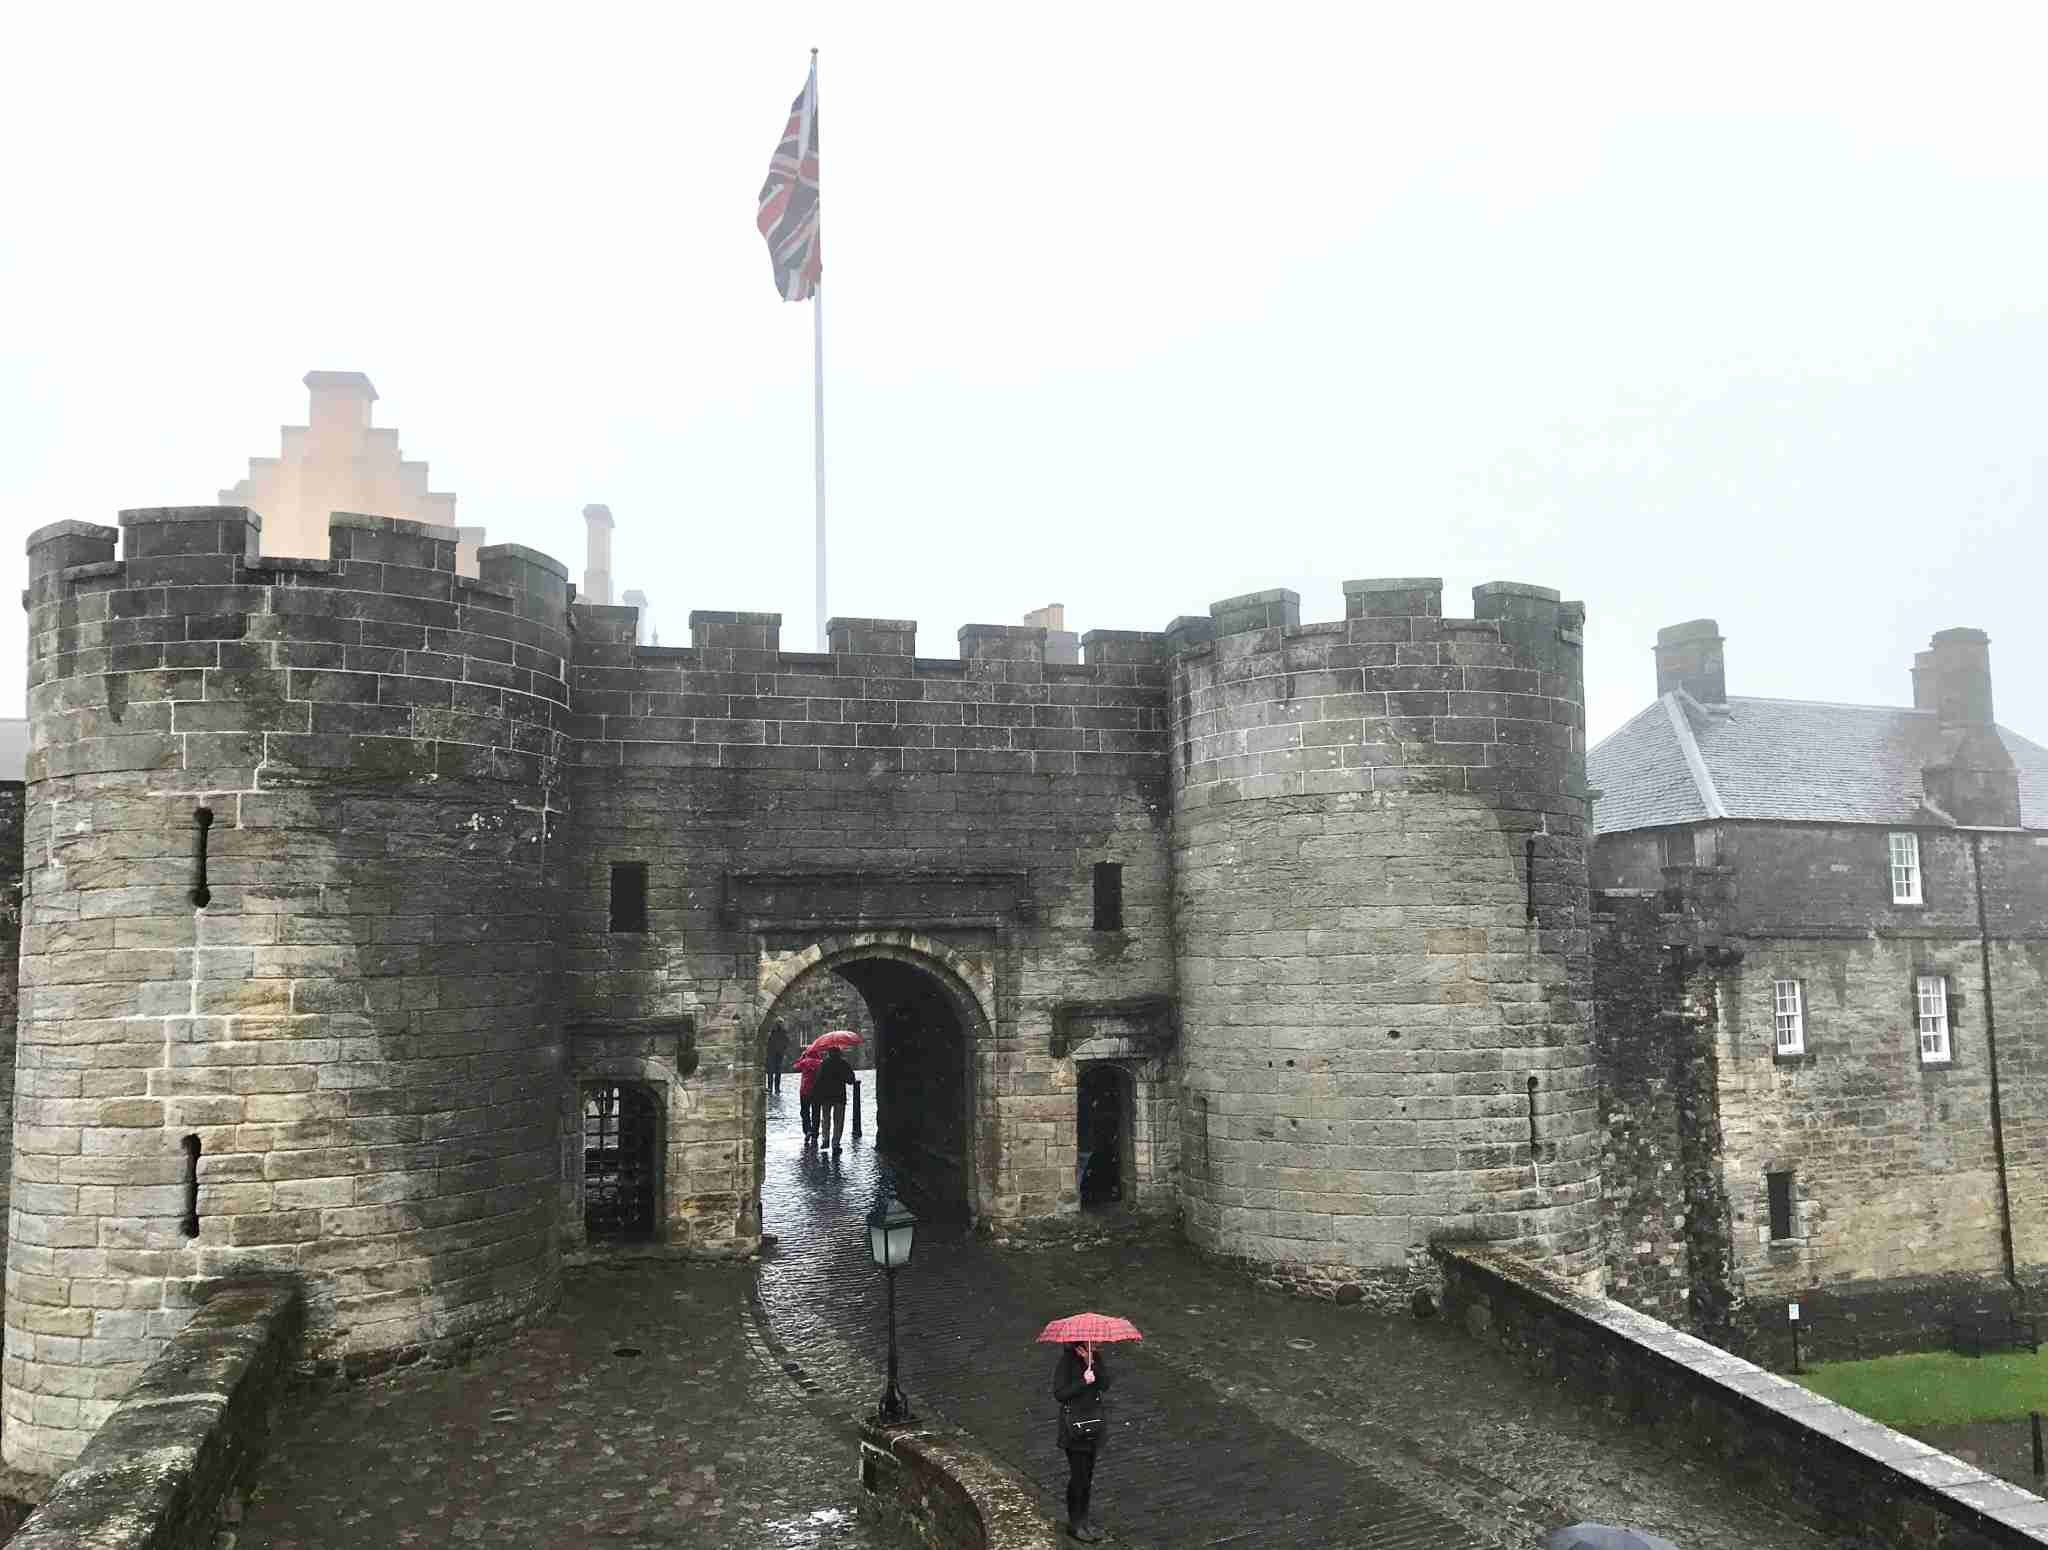 Shrouded in morning fog, Stirling Castle is a throw-back to medieval times.